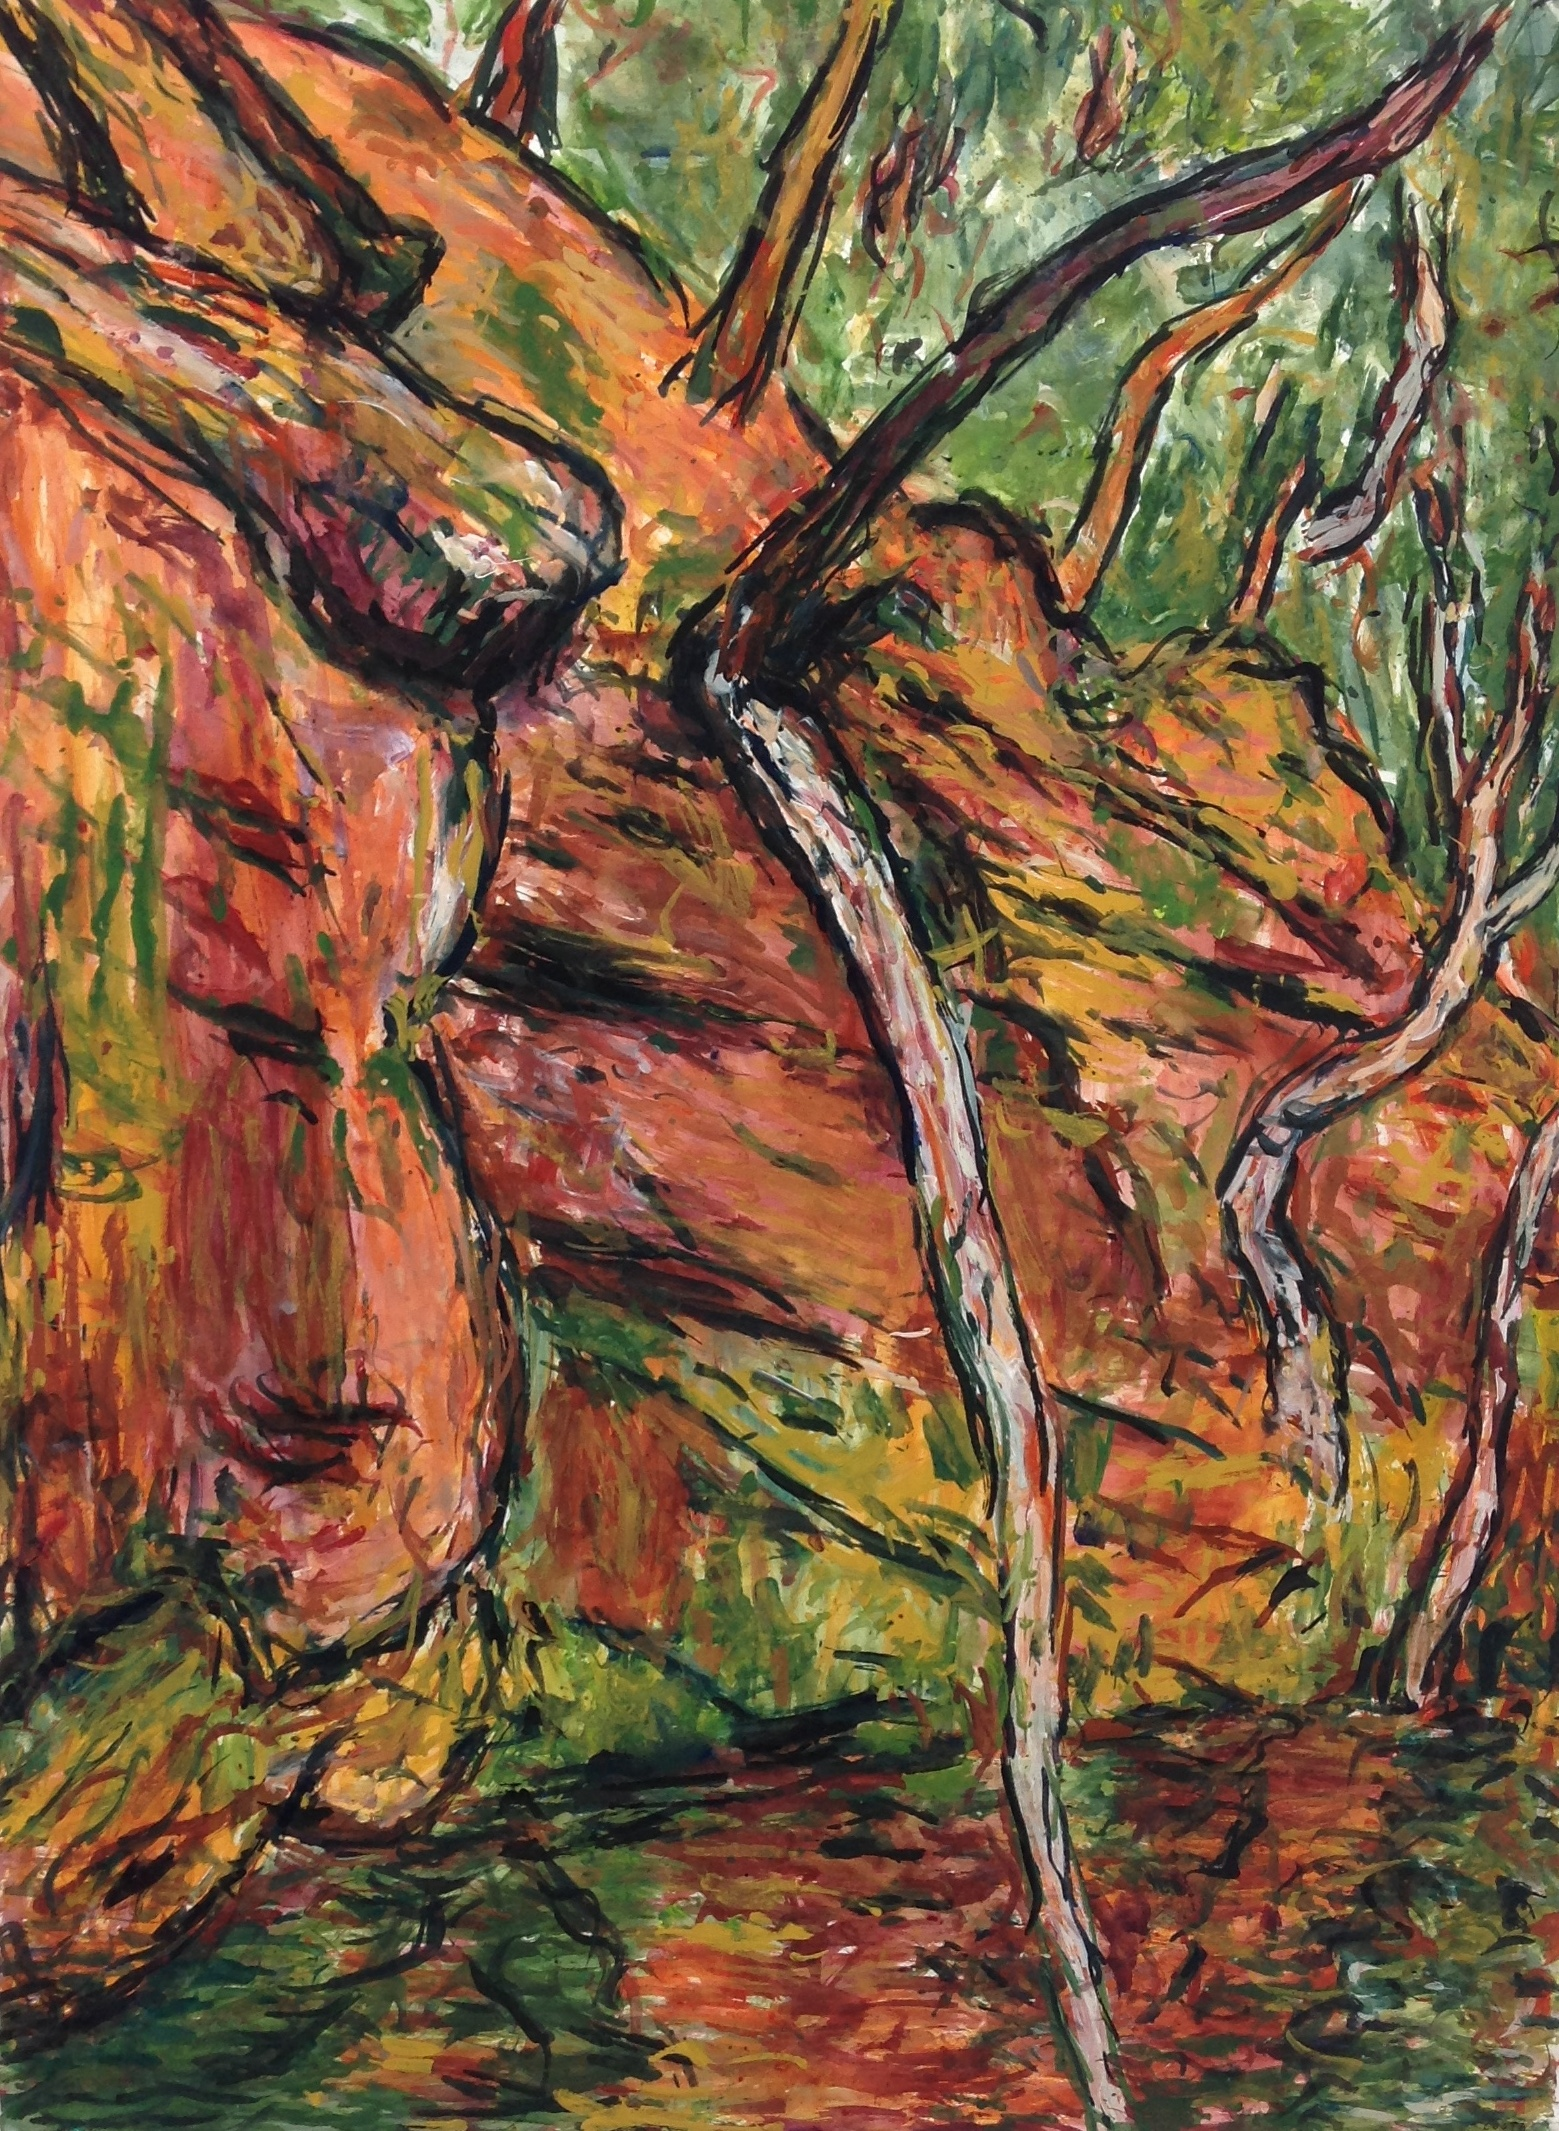 Tony Costa Fallen Tree Audley 152x114 cm mixed media on paper $ 9000